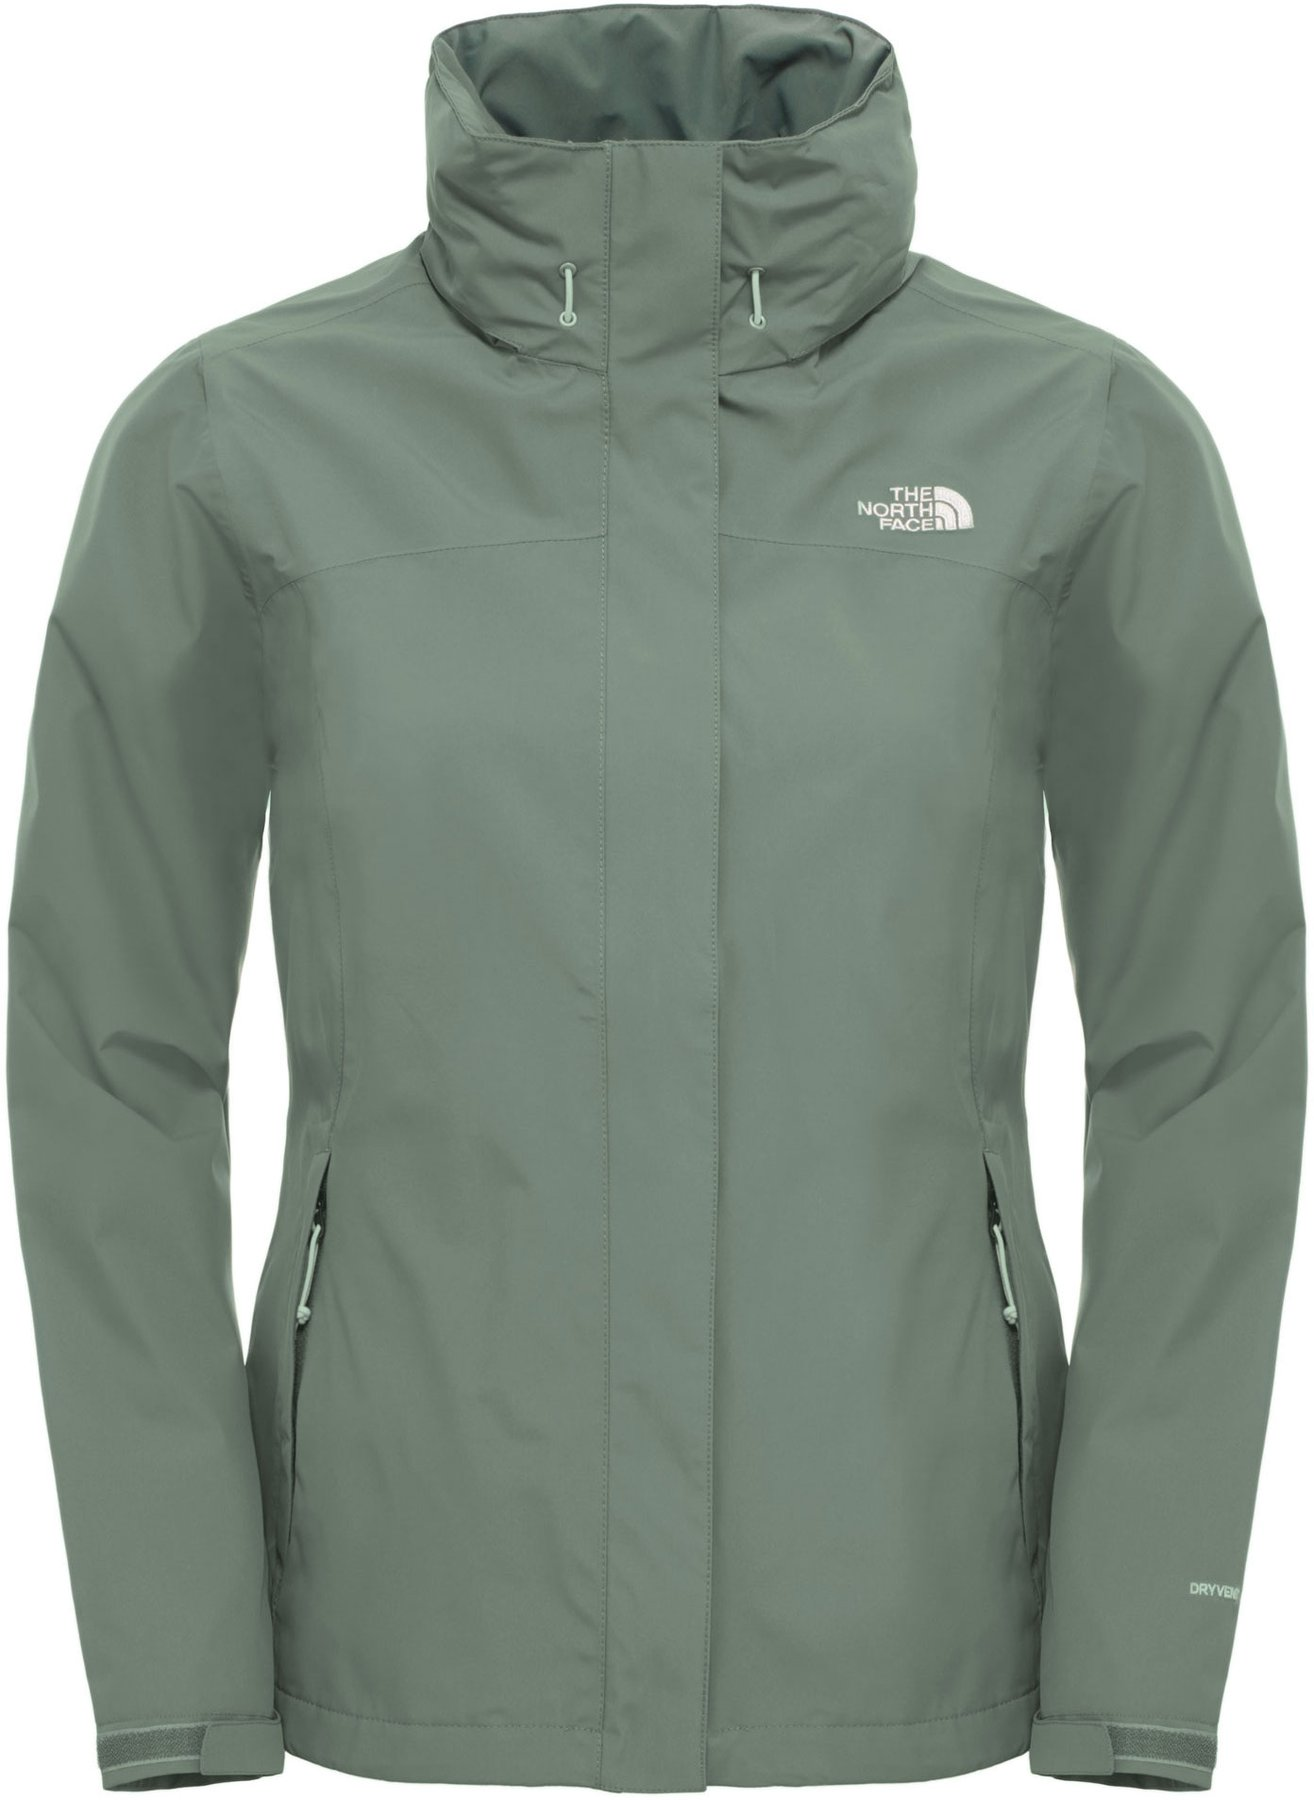 north face jacke damen winter sale